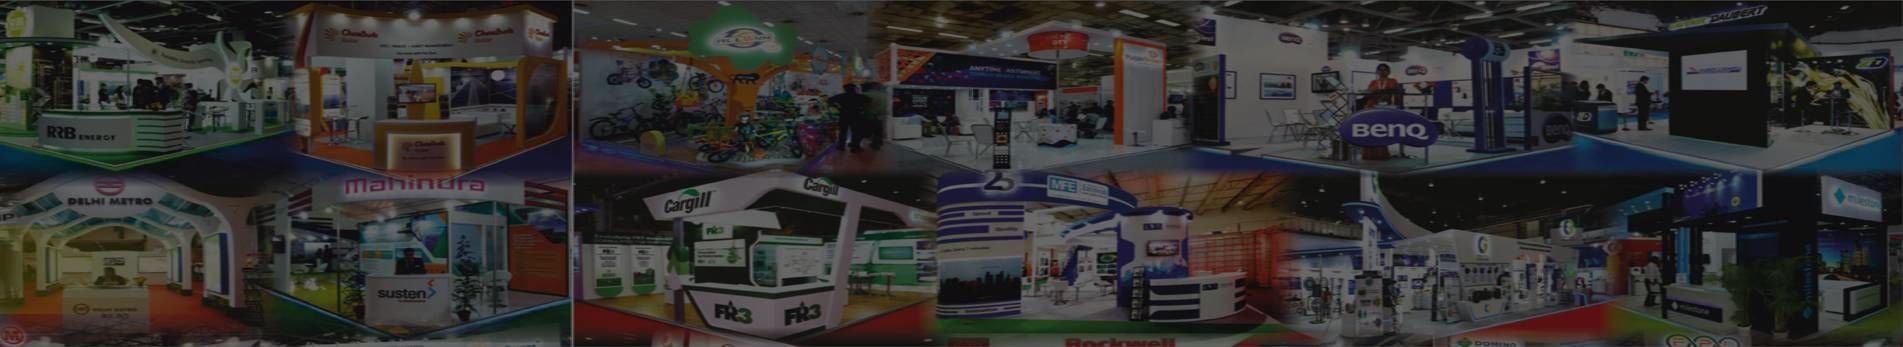 10 Successful Trade Show Booth Ideas for Better Engagement